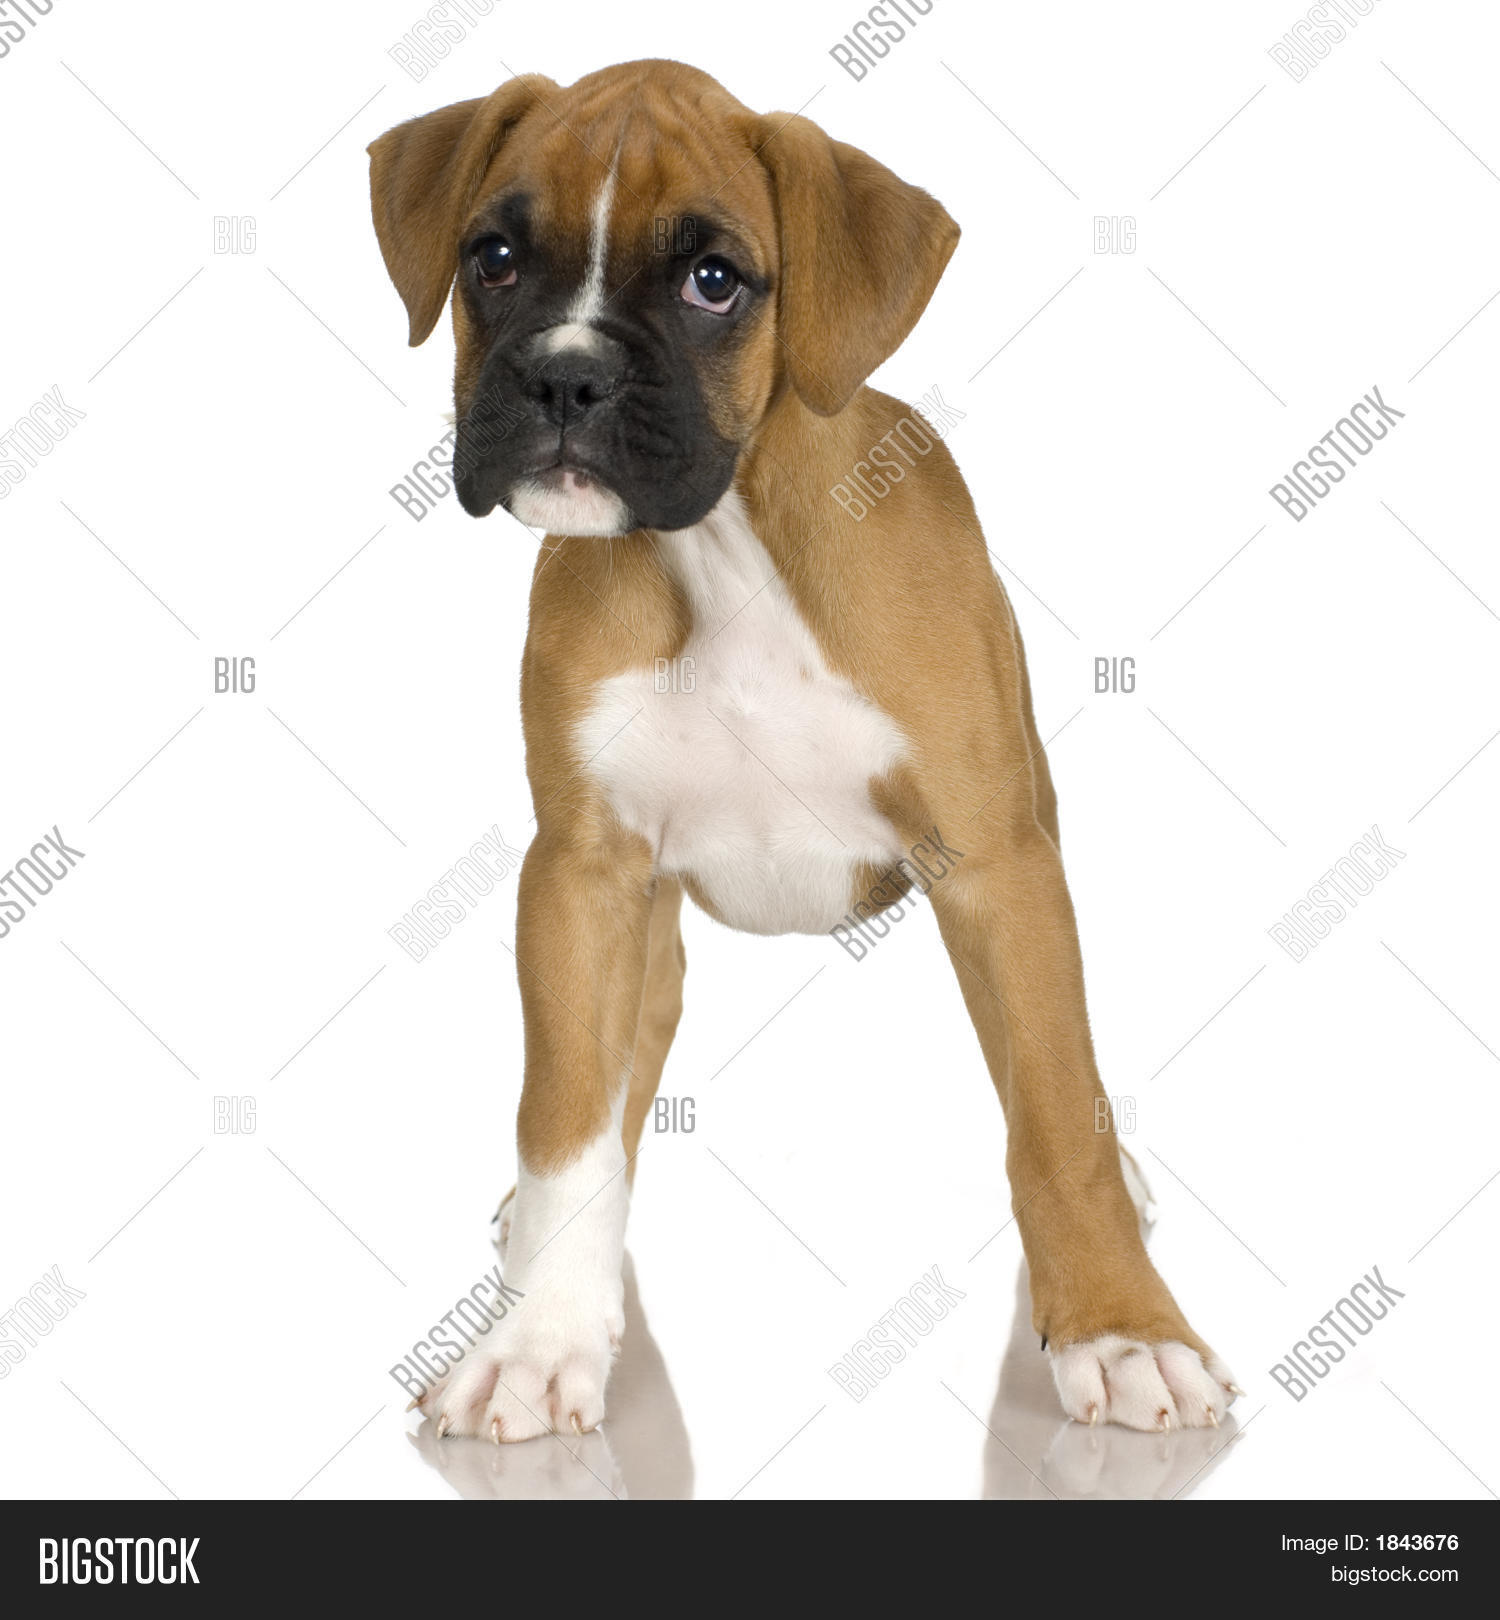 Boxer De 4 Meses Puppy Boxer 2 Mounths Image And Photo Bigstock